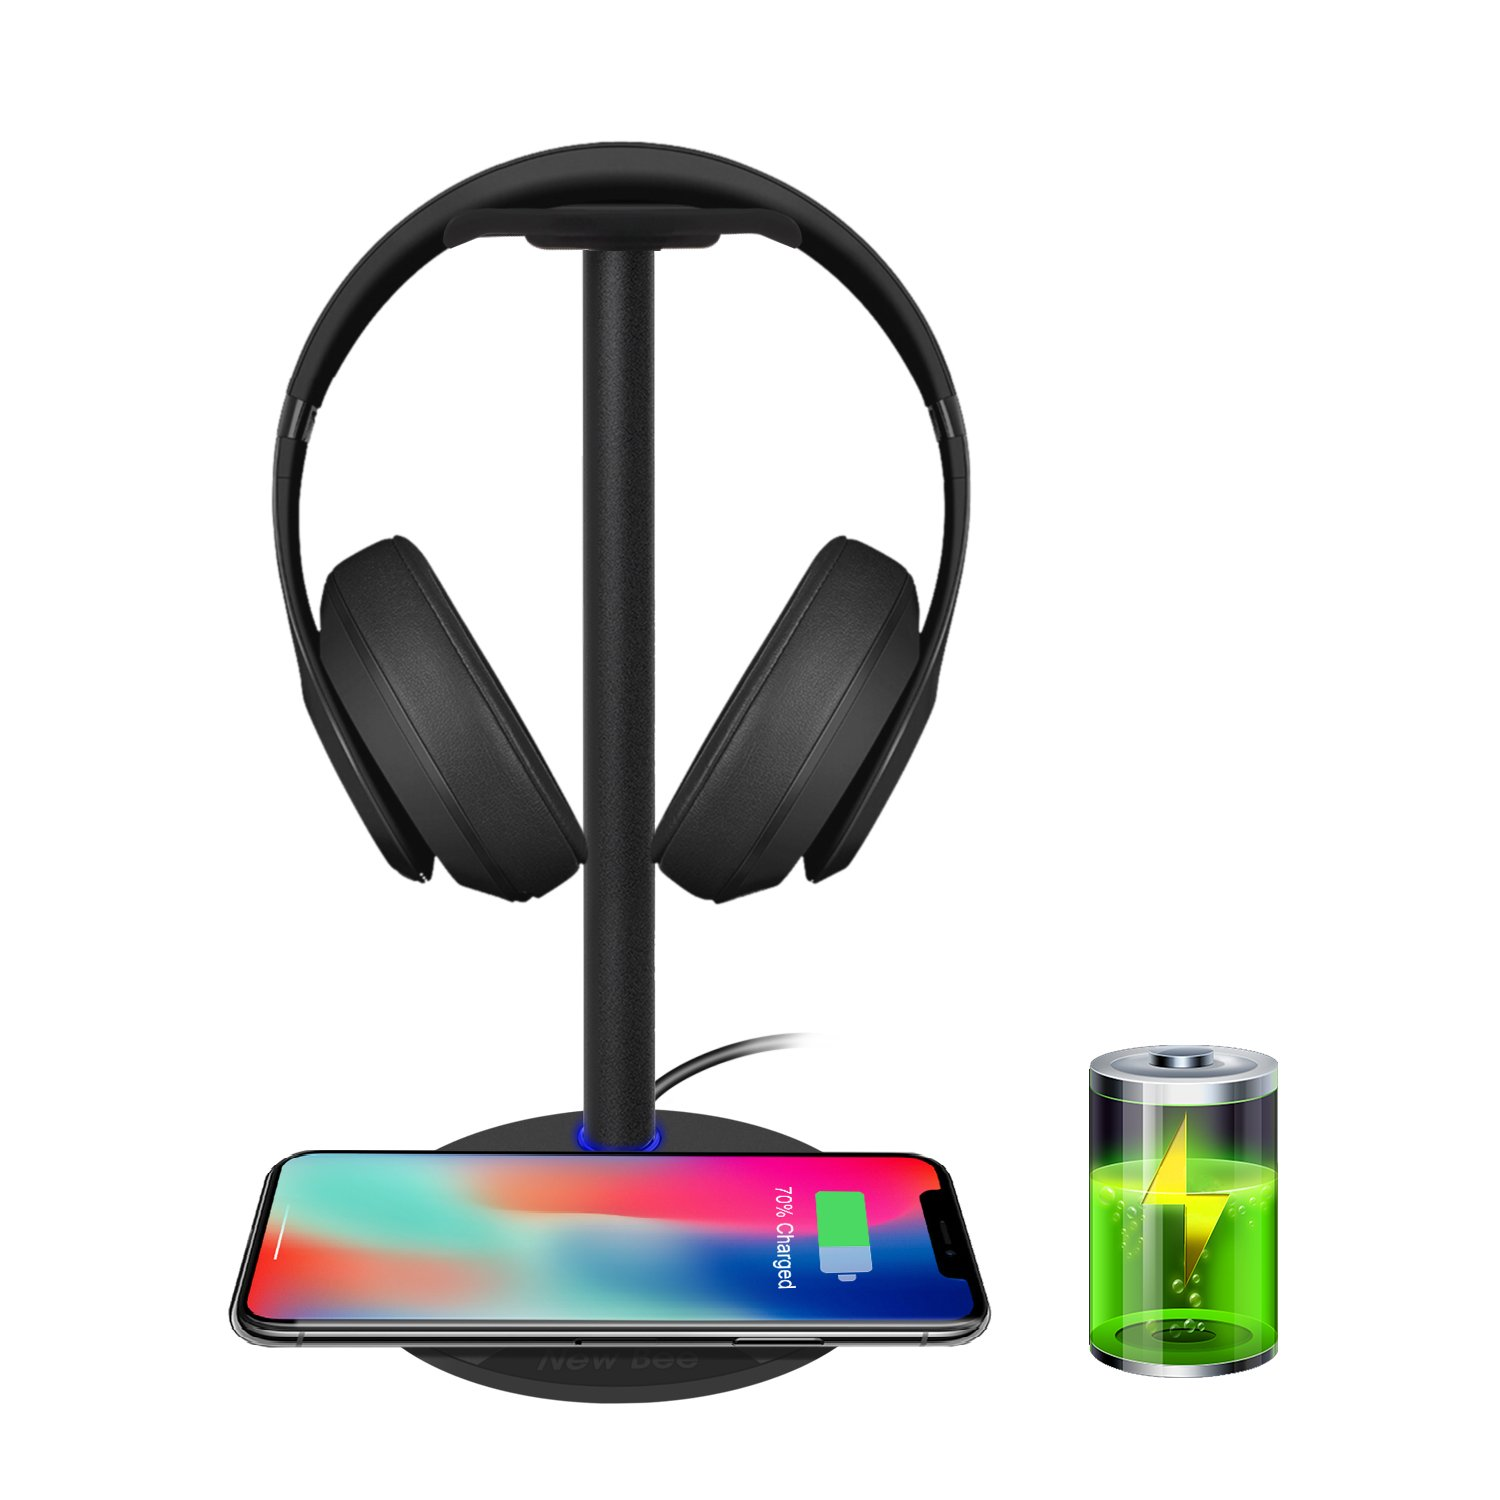 AODUKE Wireless Charger Stand,4 in 1 Wireless Charging Station Dock Compatible with iWatch 5 4 3 2 1 Airpods,iPhone 11 11 Pro X Xs XR Max 8 Plus 8 Samsung Galaxy S9 S8 and Headphones Stand Holder